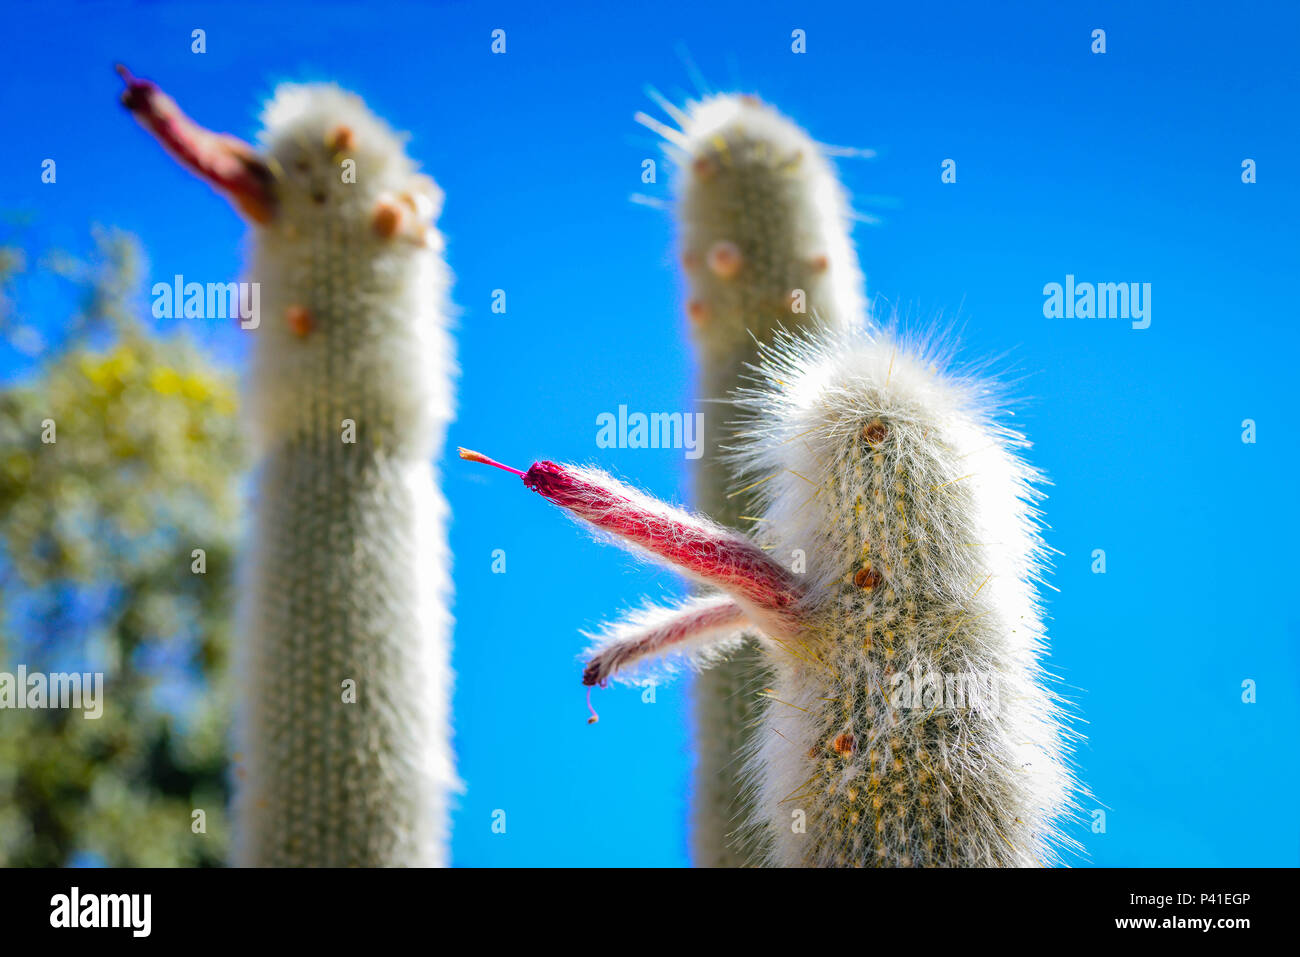 A Trio Of Old Man Cacti With Blooming Red Flowers Projecting Outward